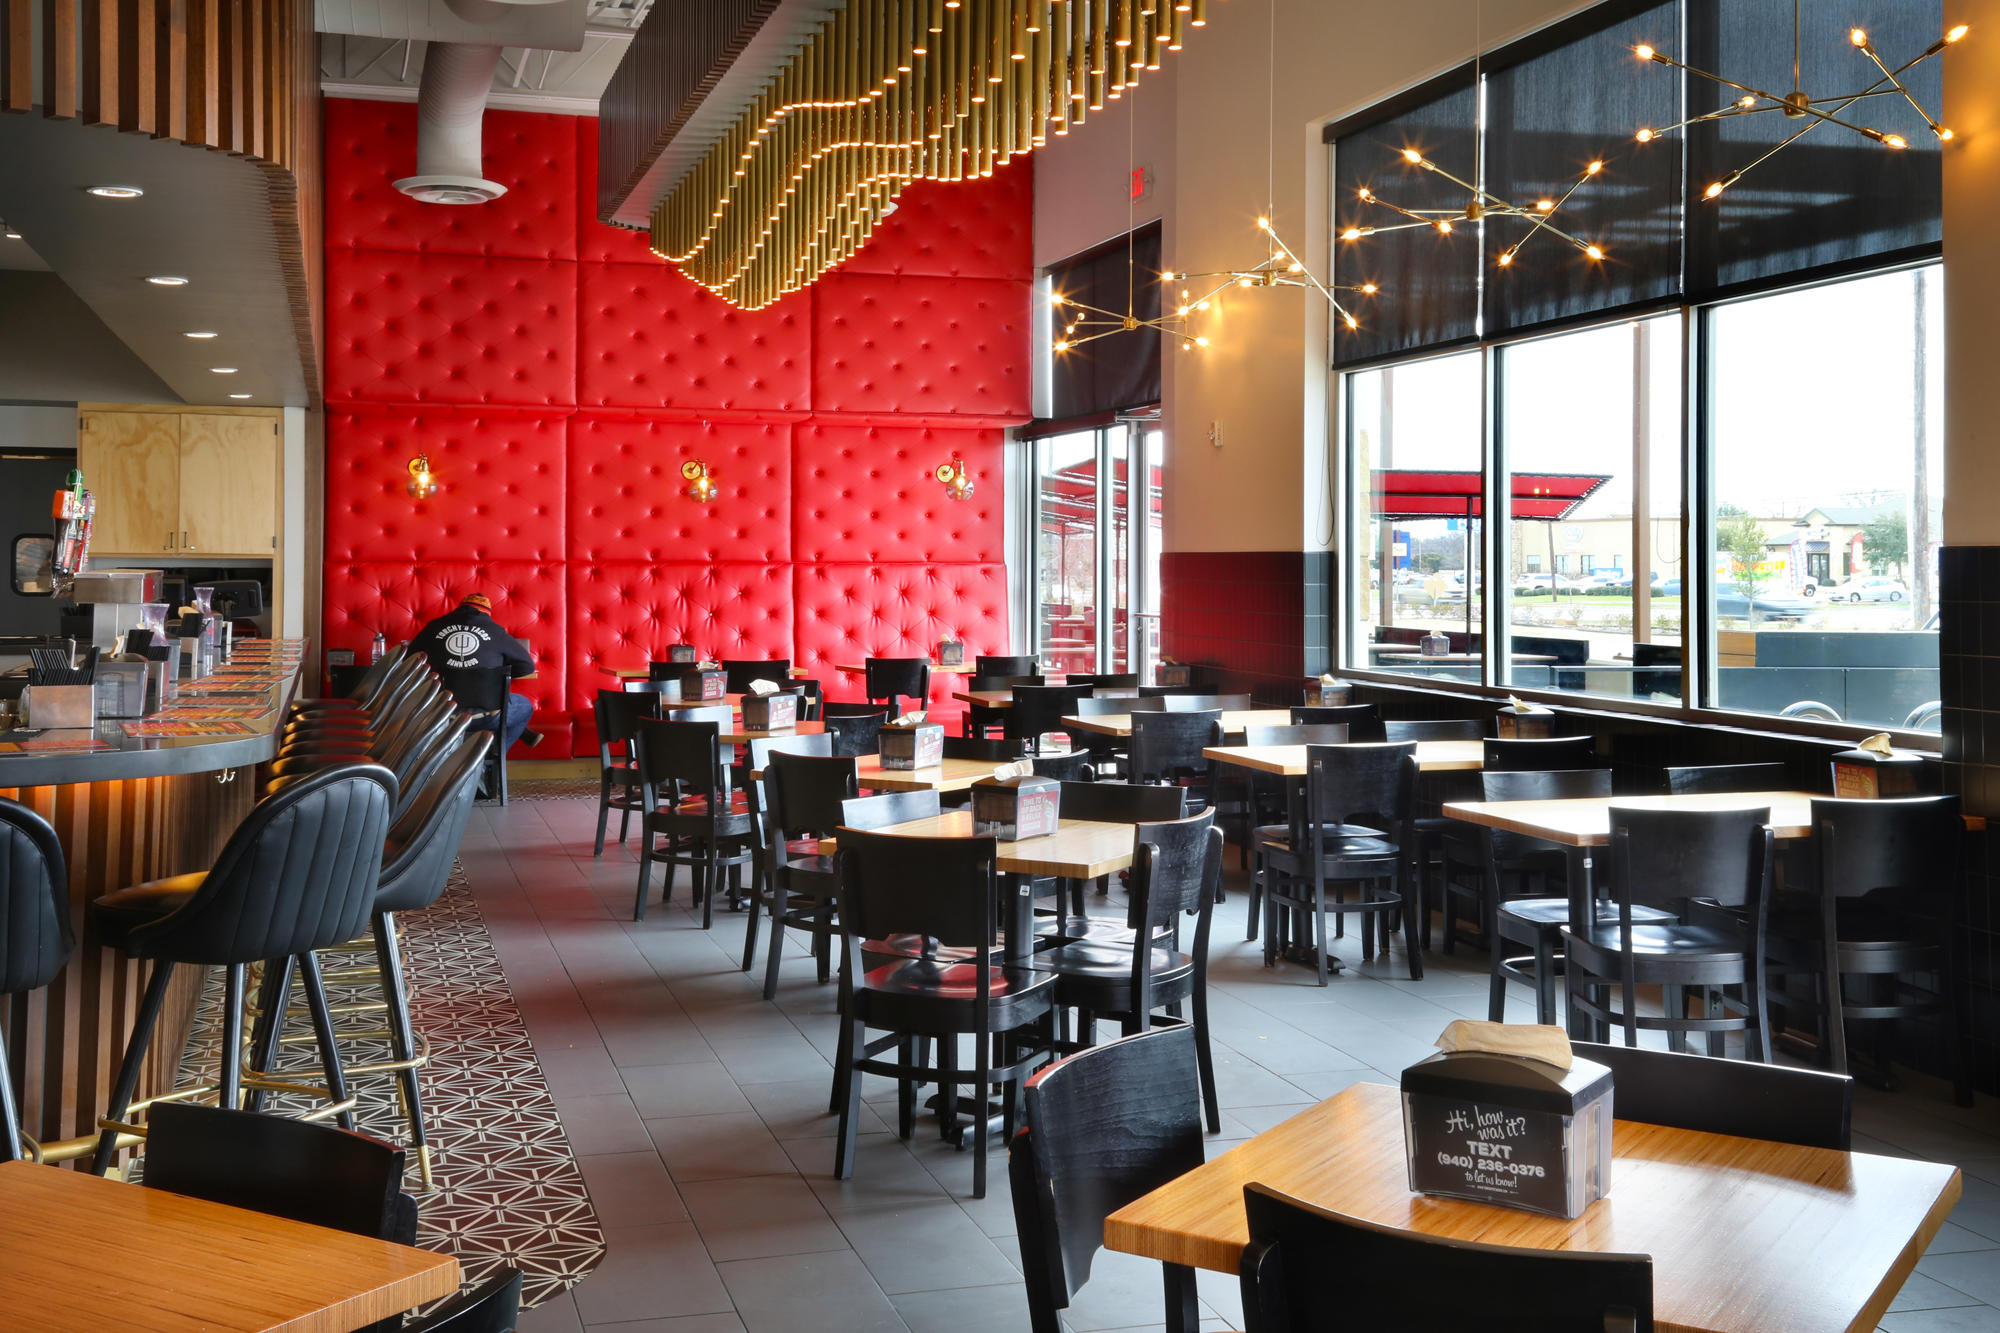 Torchy's Tacos image 4